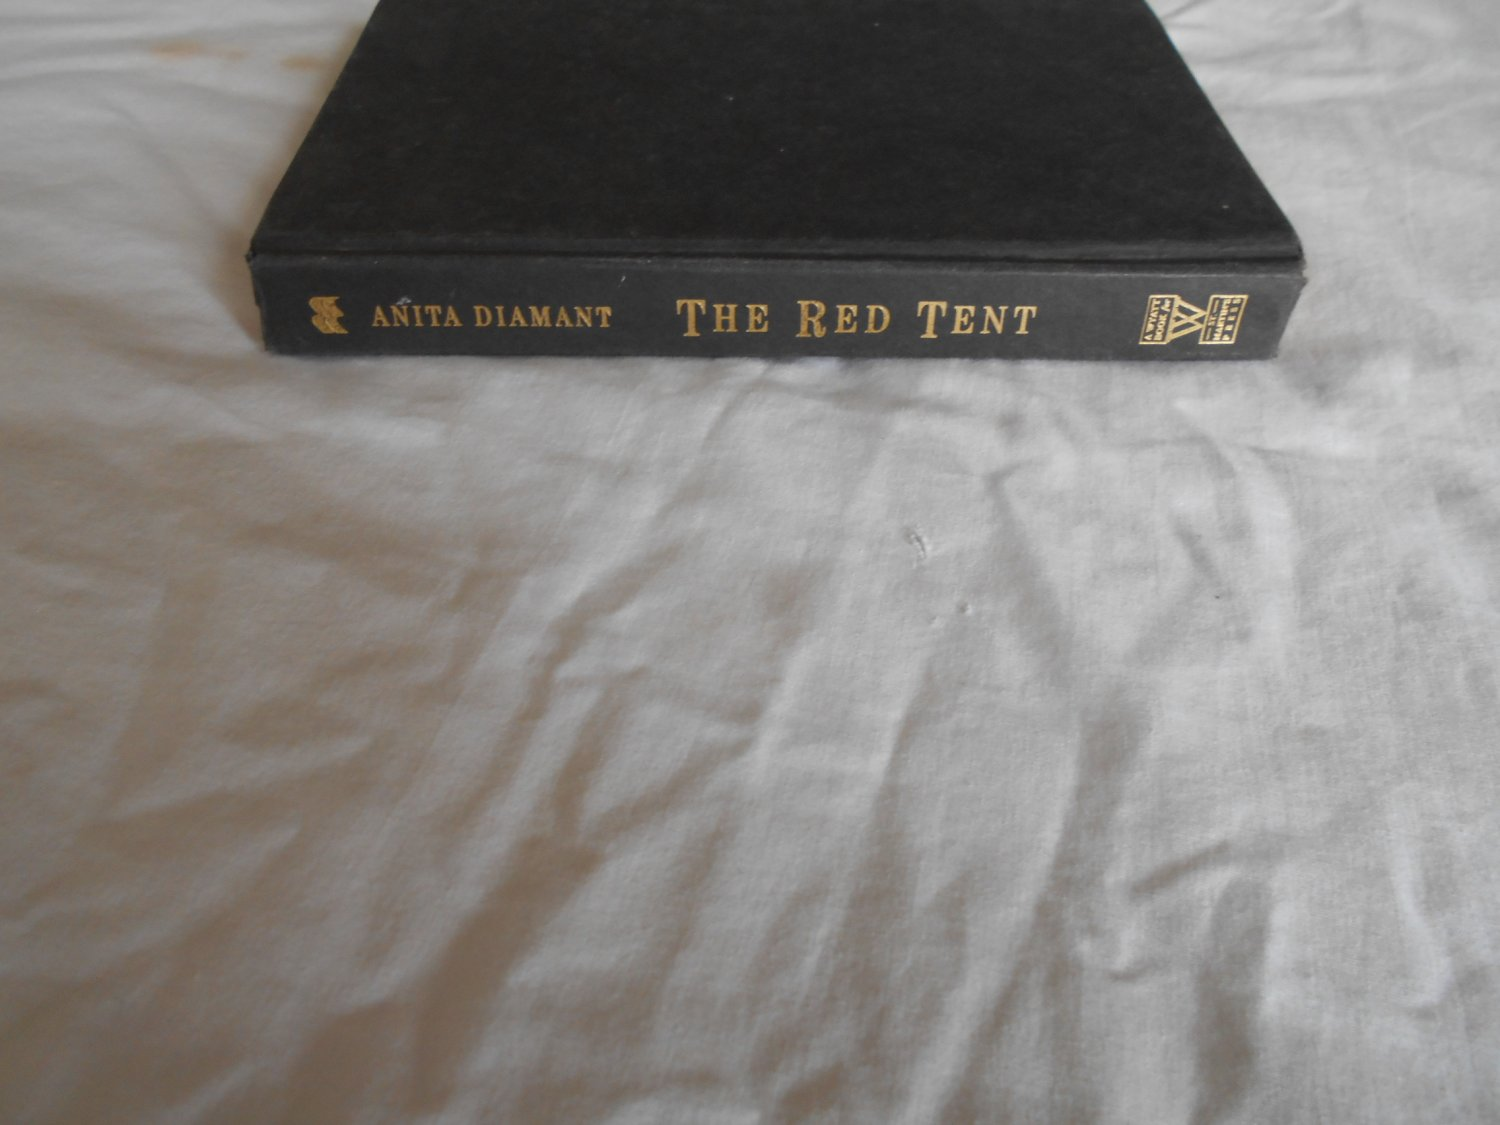 The Red Tent by Anita Diamant (1977) (GR2) Religious, Historical Fiction, Christian